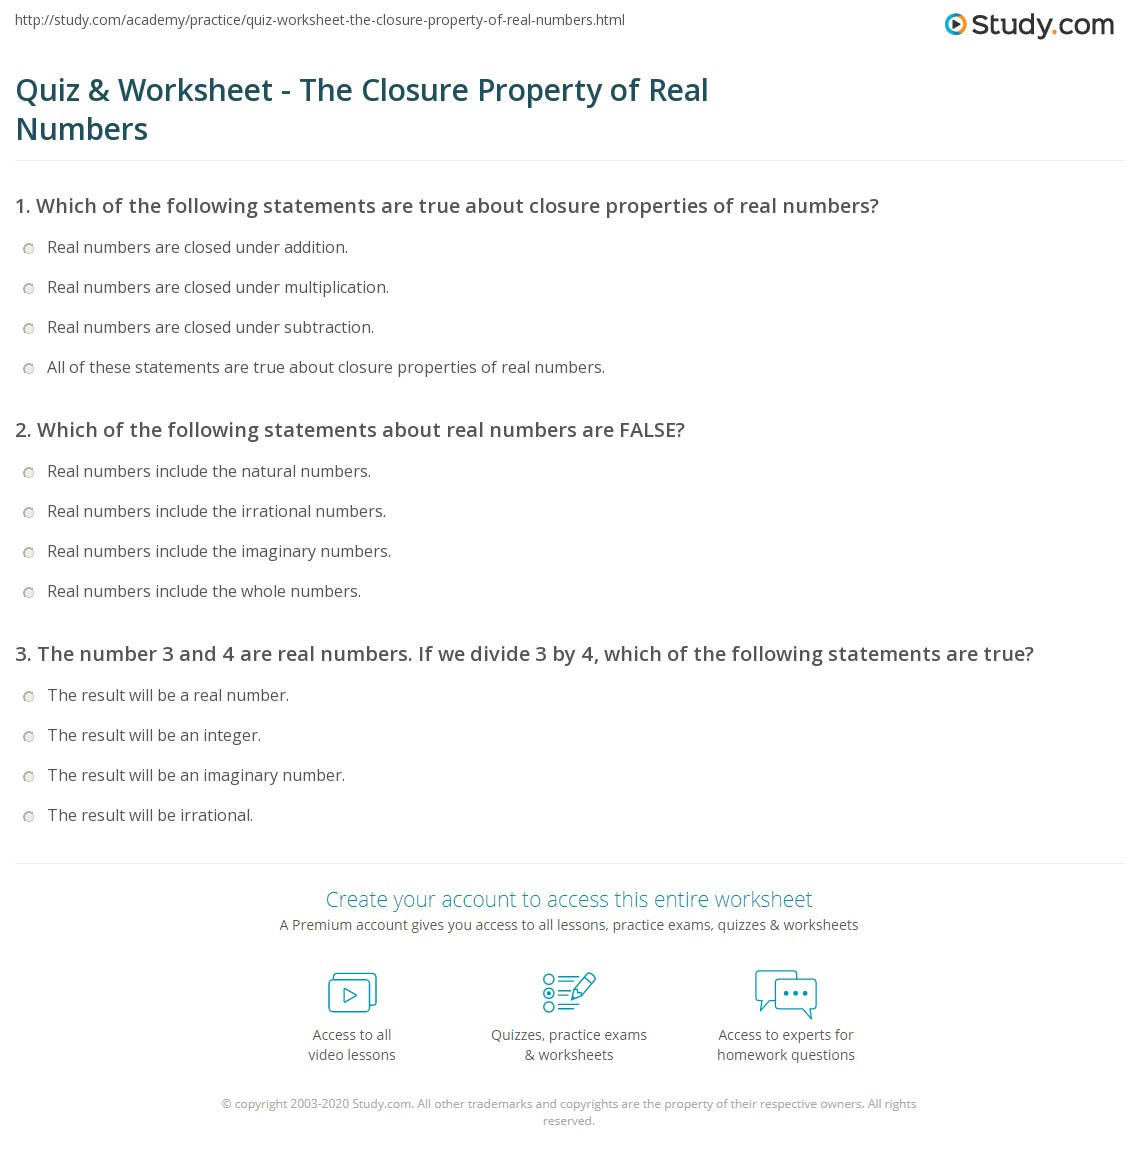 Quiz & Worksheet - The Closure Property Of Real Numbers